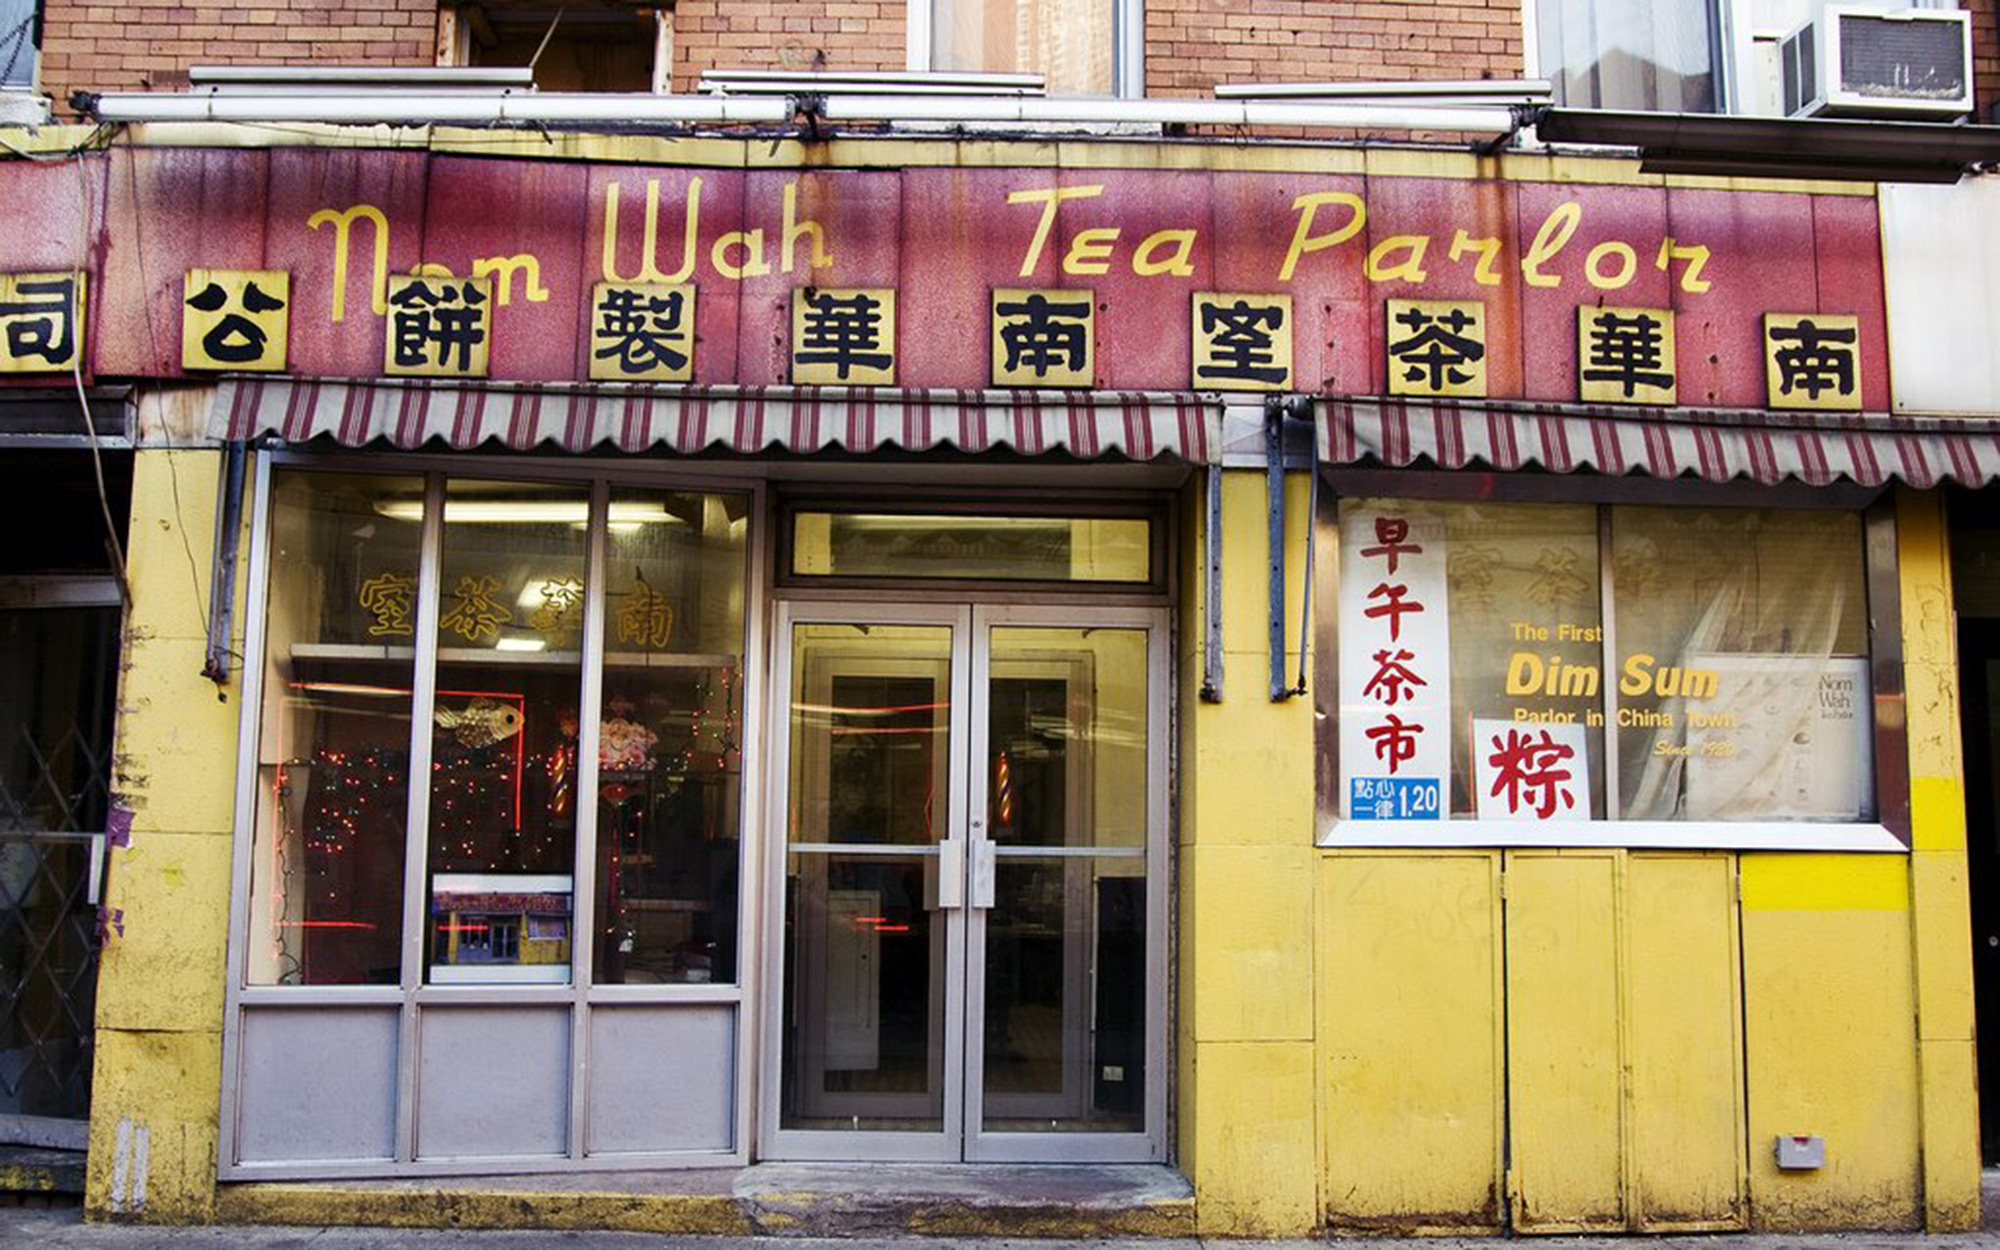 New York City's Best Chinese Restaurants: Nom Wah Tea Parlor